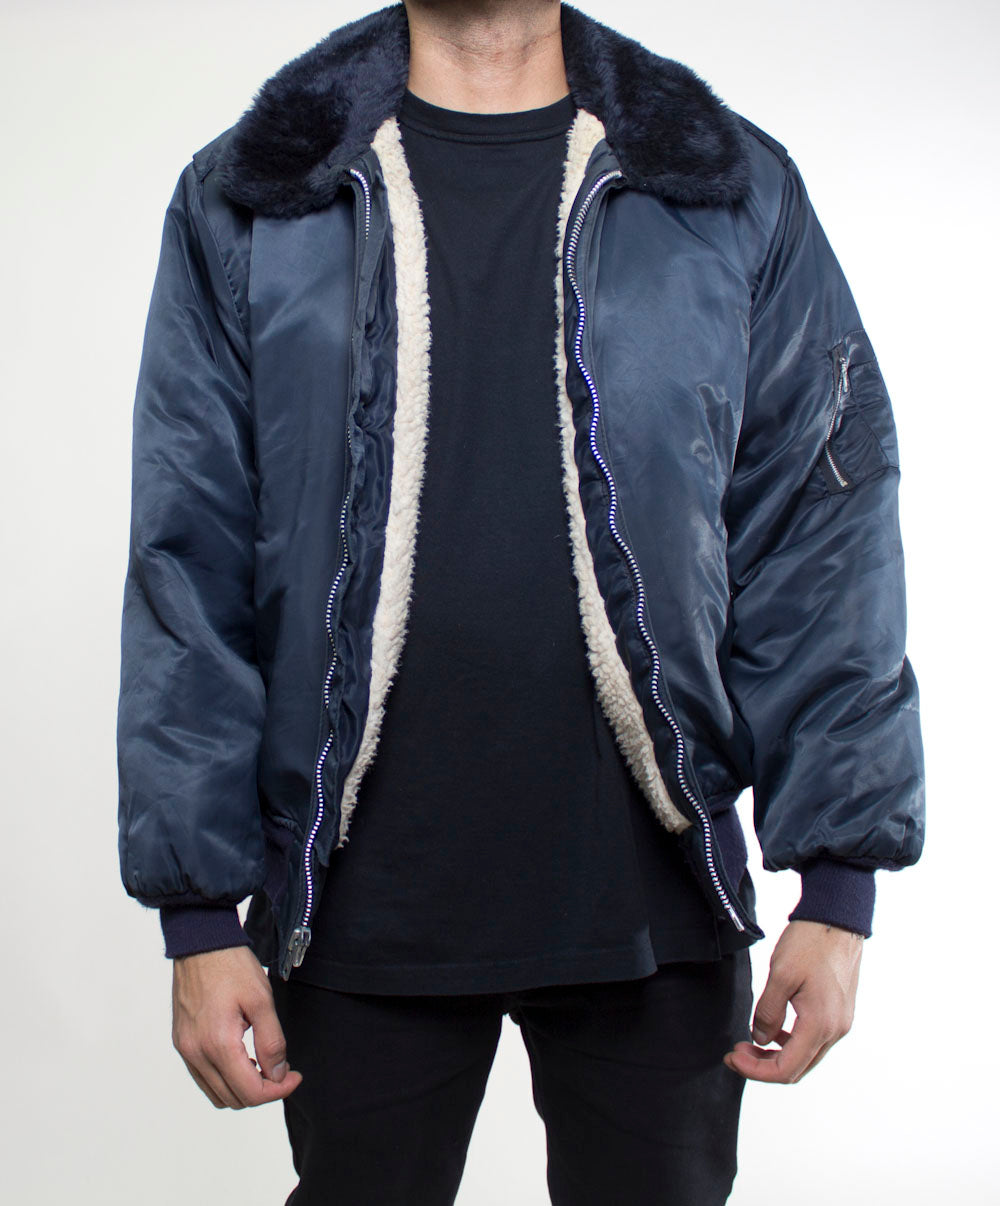 Wool Lined Bomber